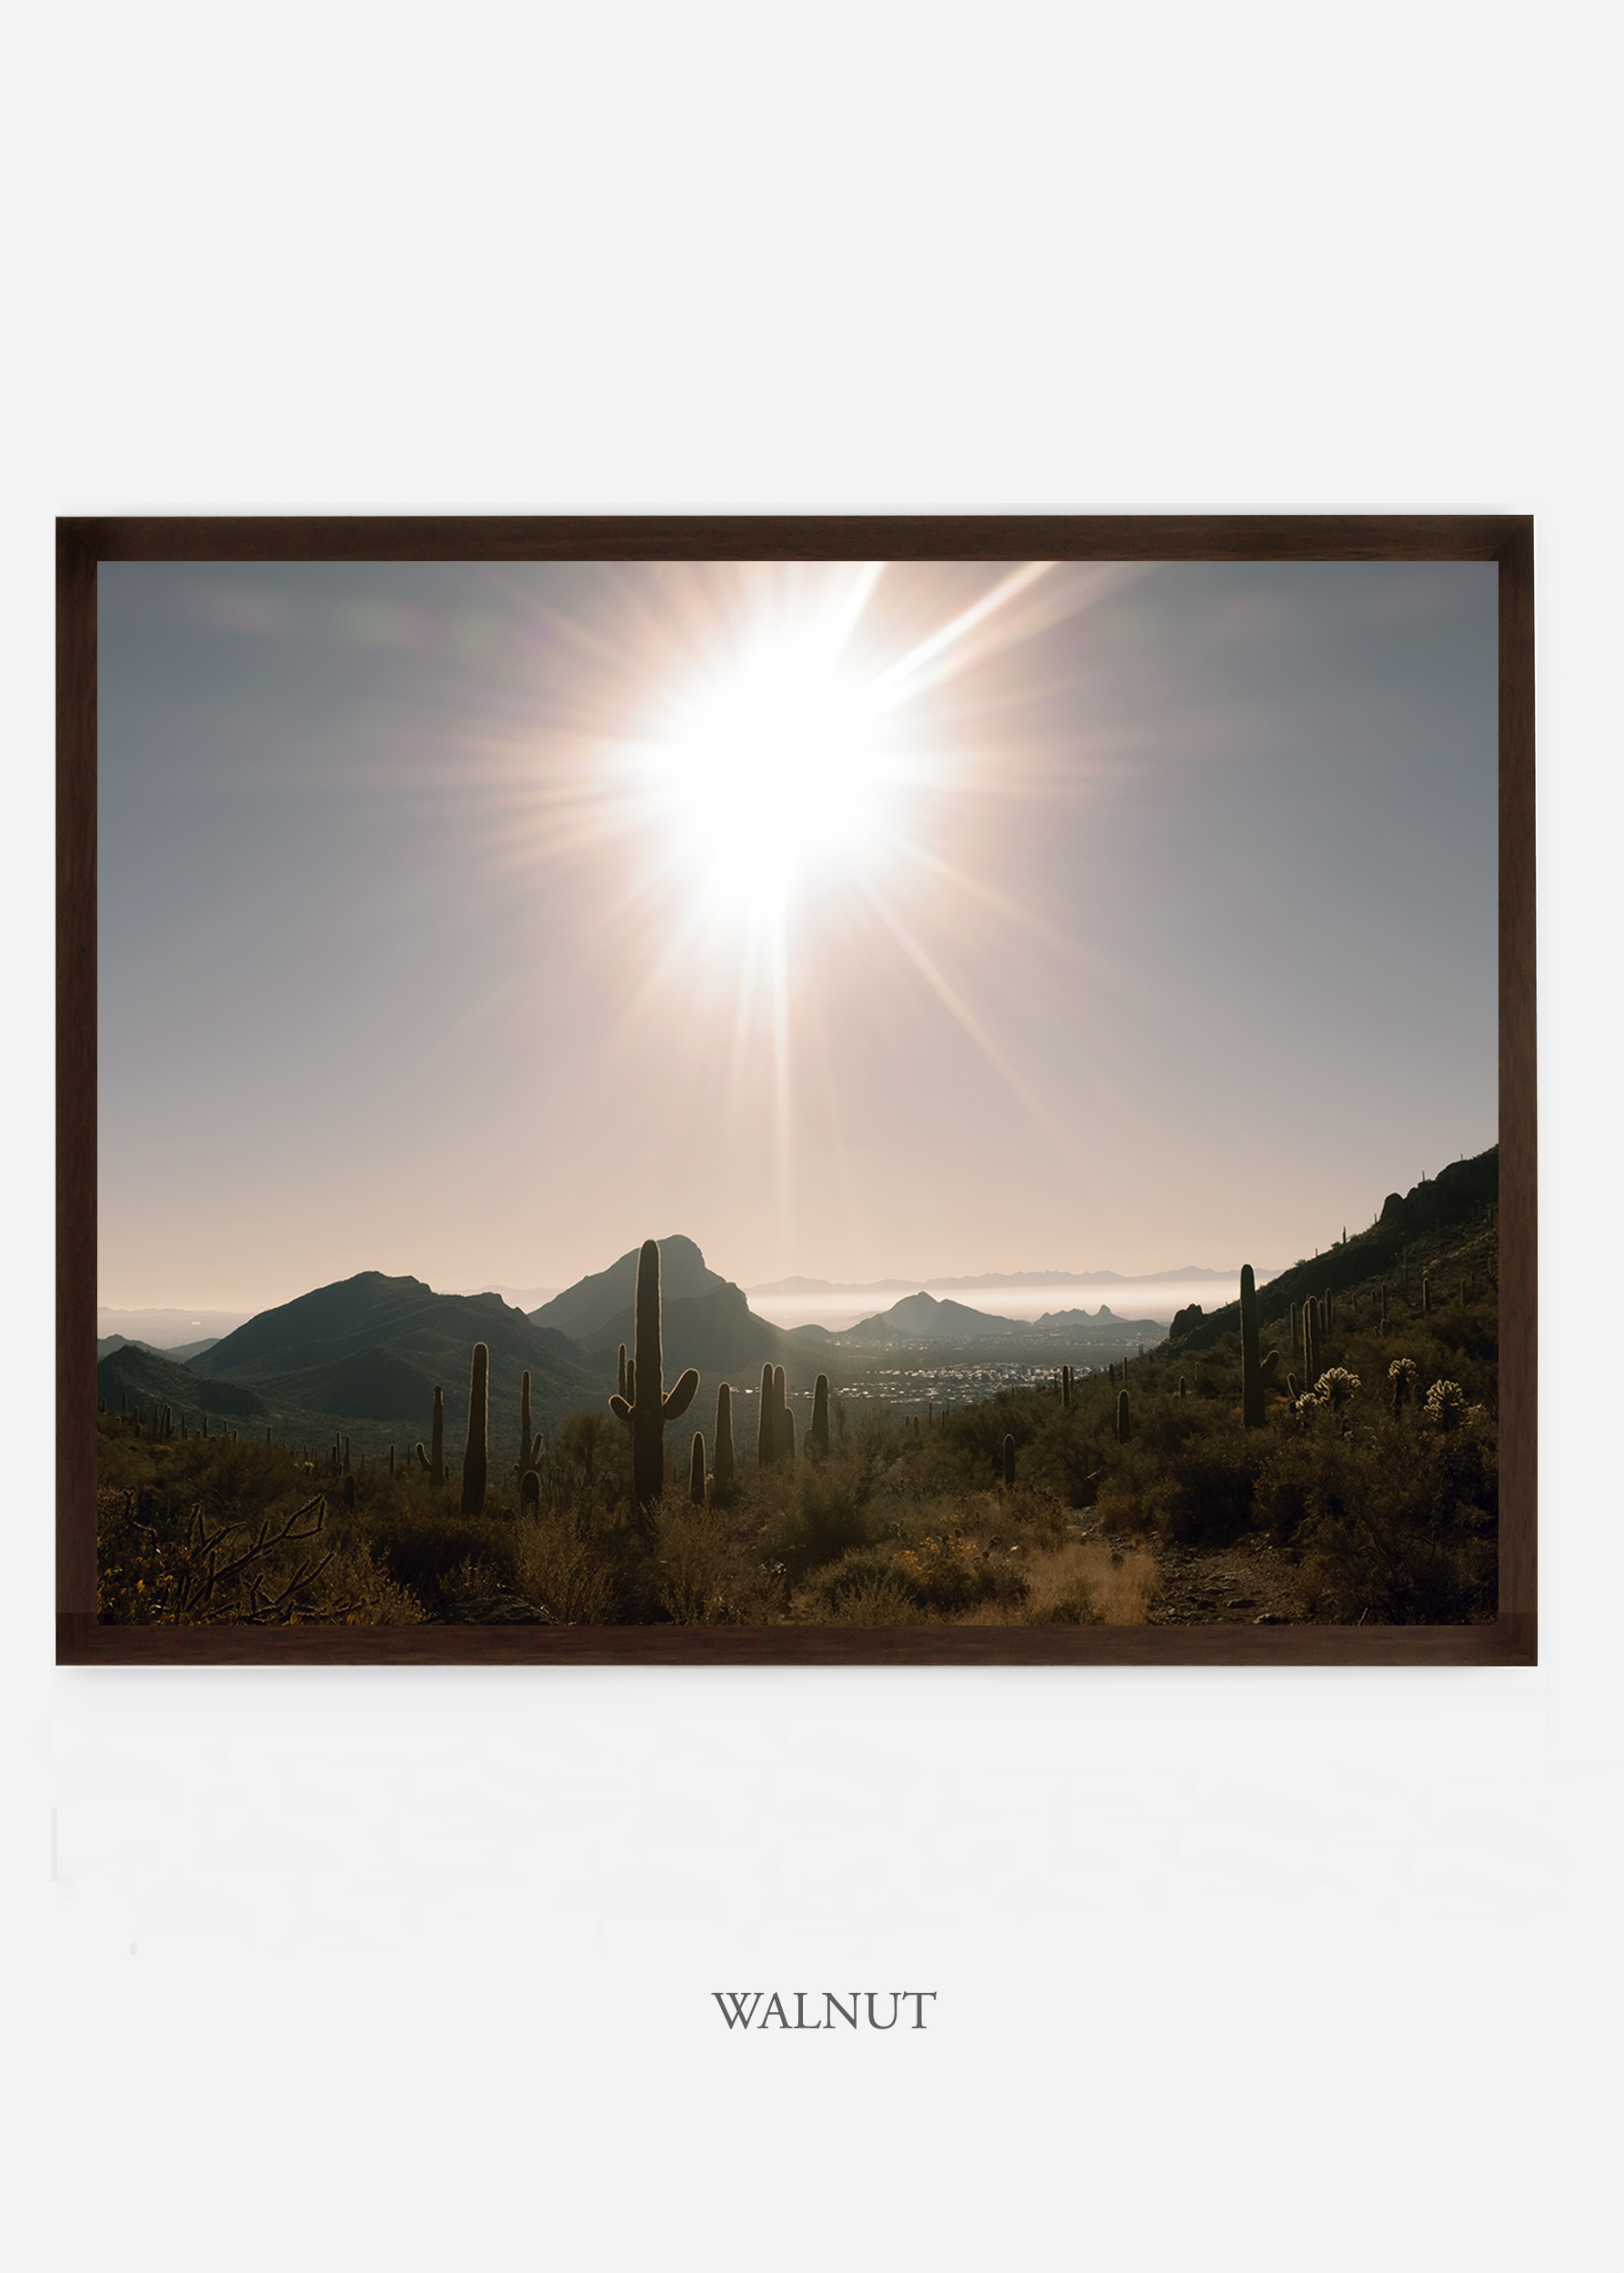 nomat_walnutframe-saguaroNo.15-wildercalifornia-art-wallart-cactusprint-homedecor-prints-arizona-botanical-artwork-interiordesign.jpg